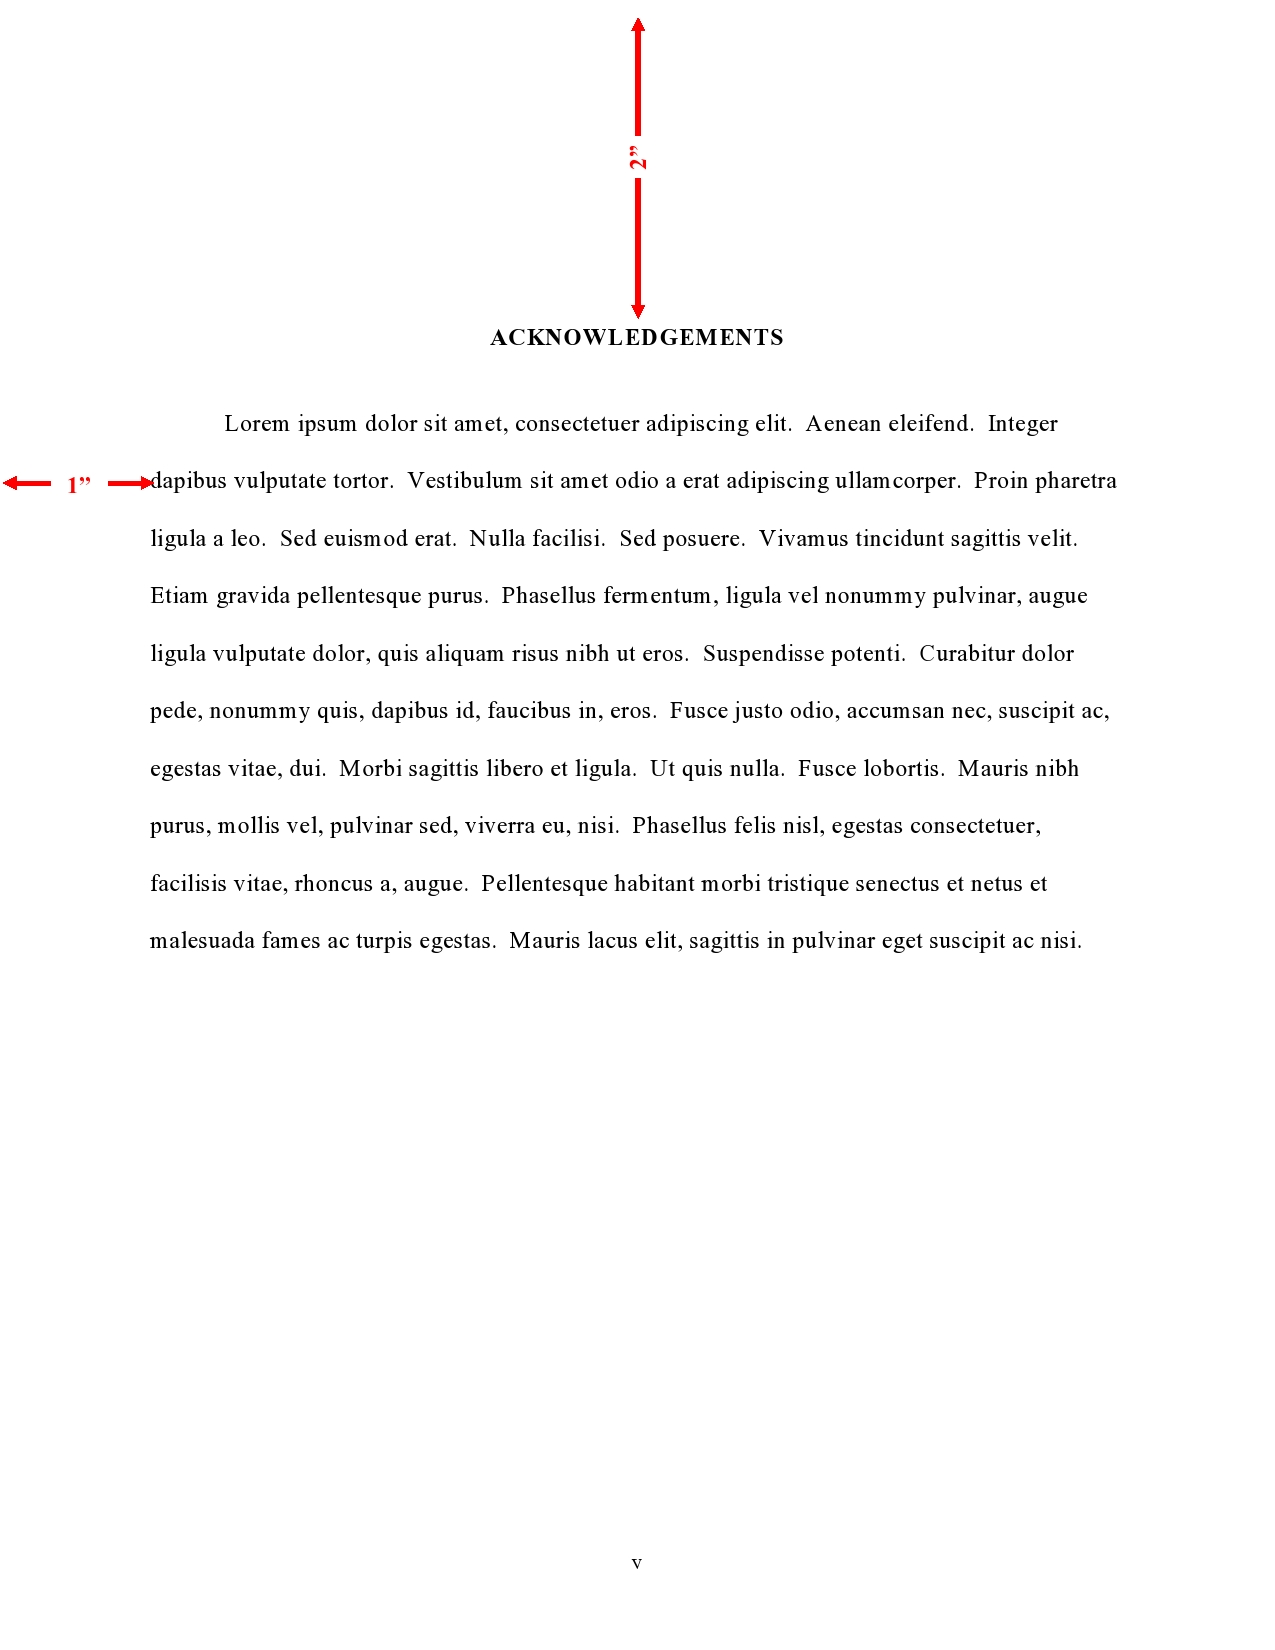 Order And Components  Thesis And Dissertation Guide  Uncchapel  Acknowledgements